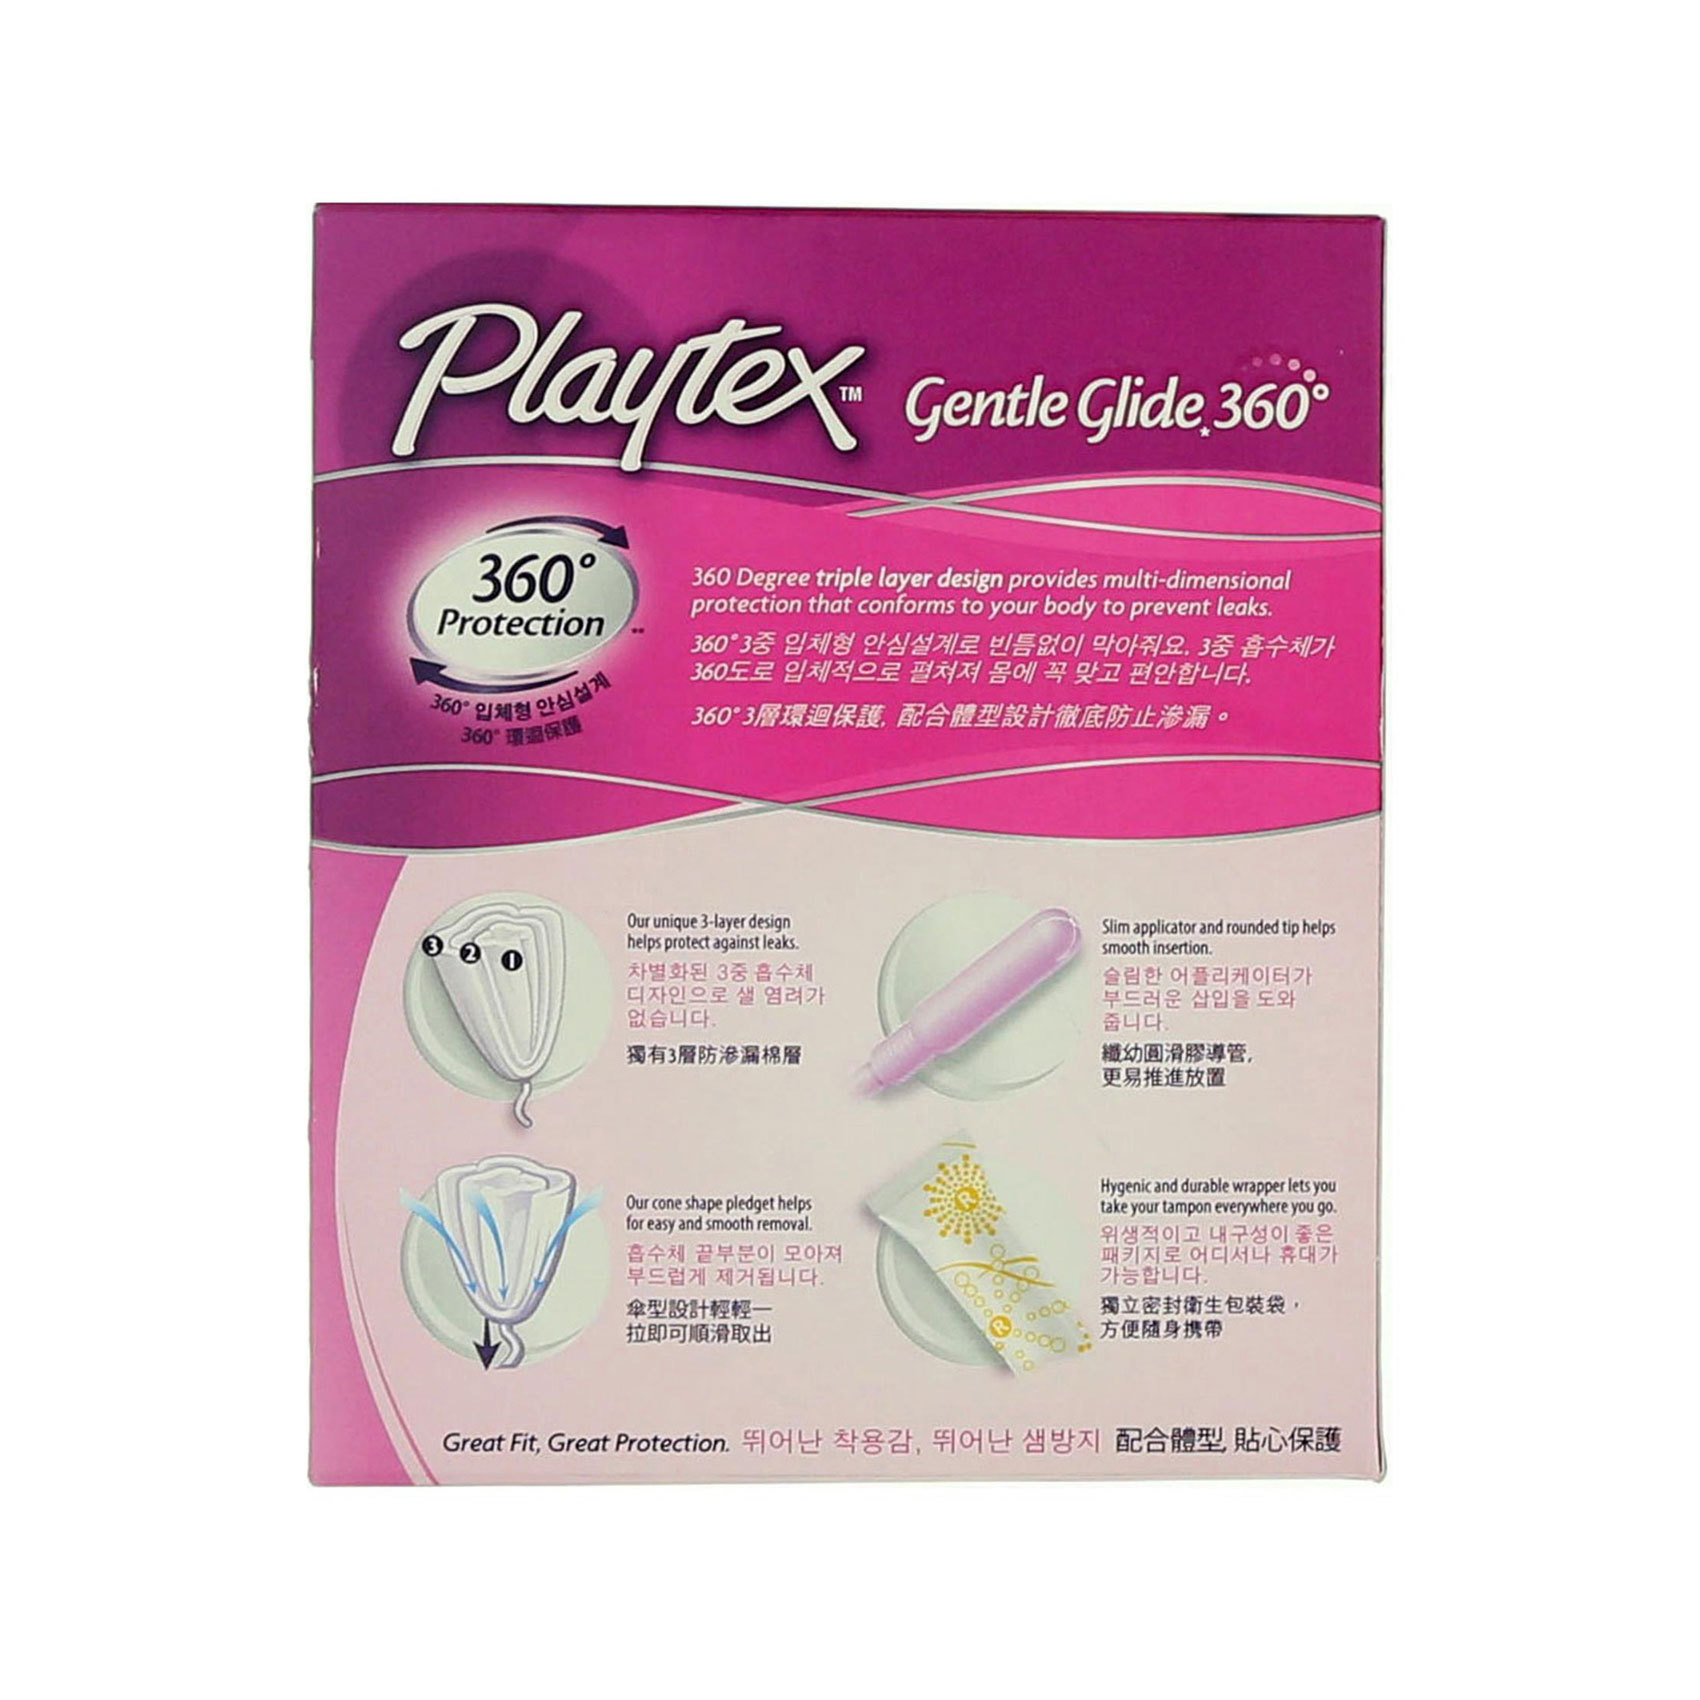 PLAYTEX TAMPONS 9 REG/9 SUPER -18'S